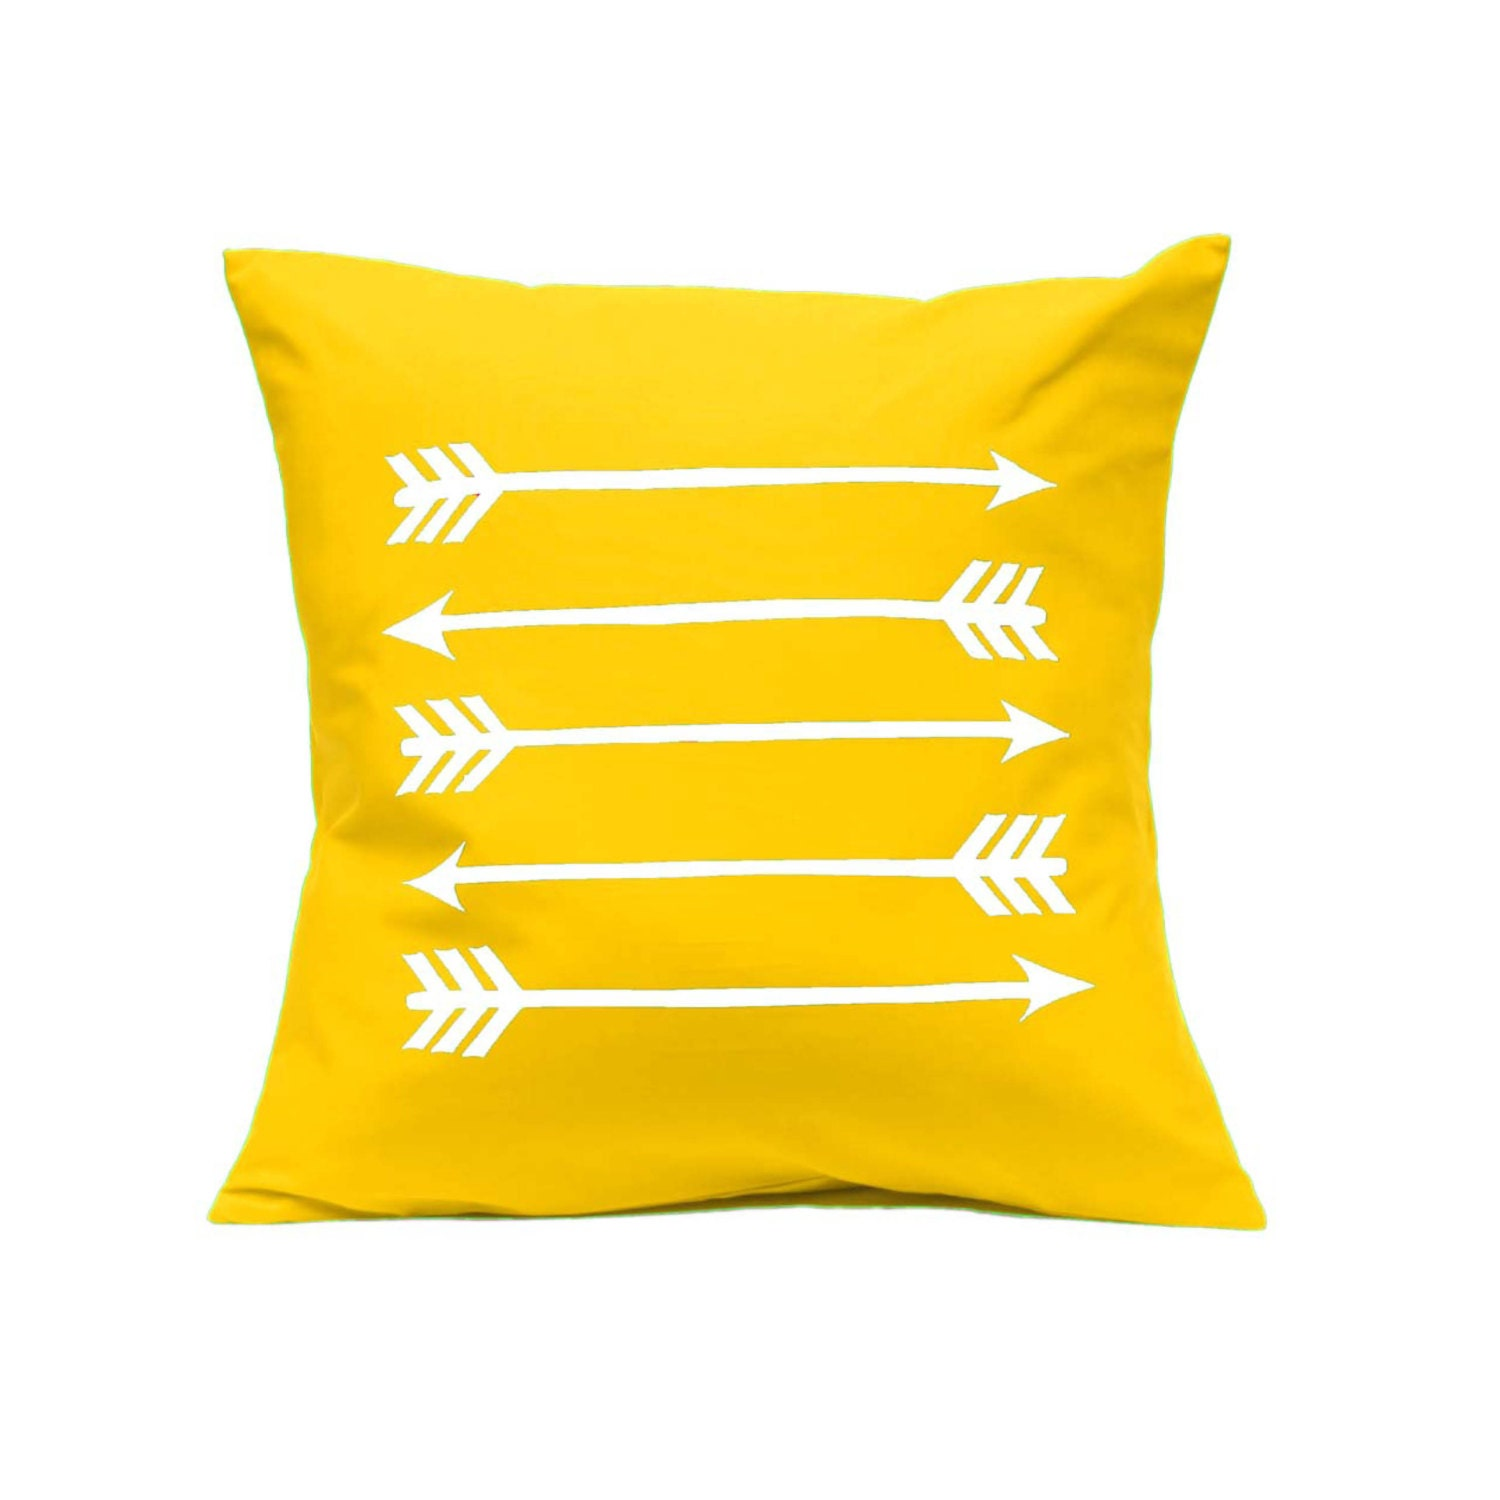 Throw Pillow Arrows in Bright Yellow by linneaswedishdesign